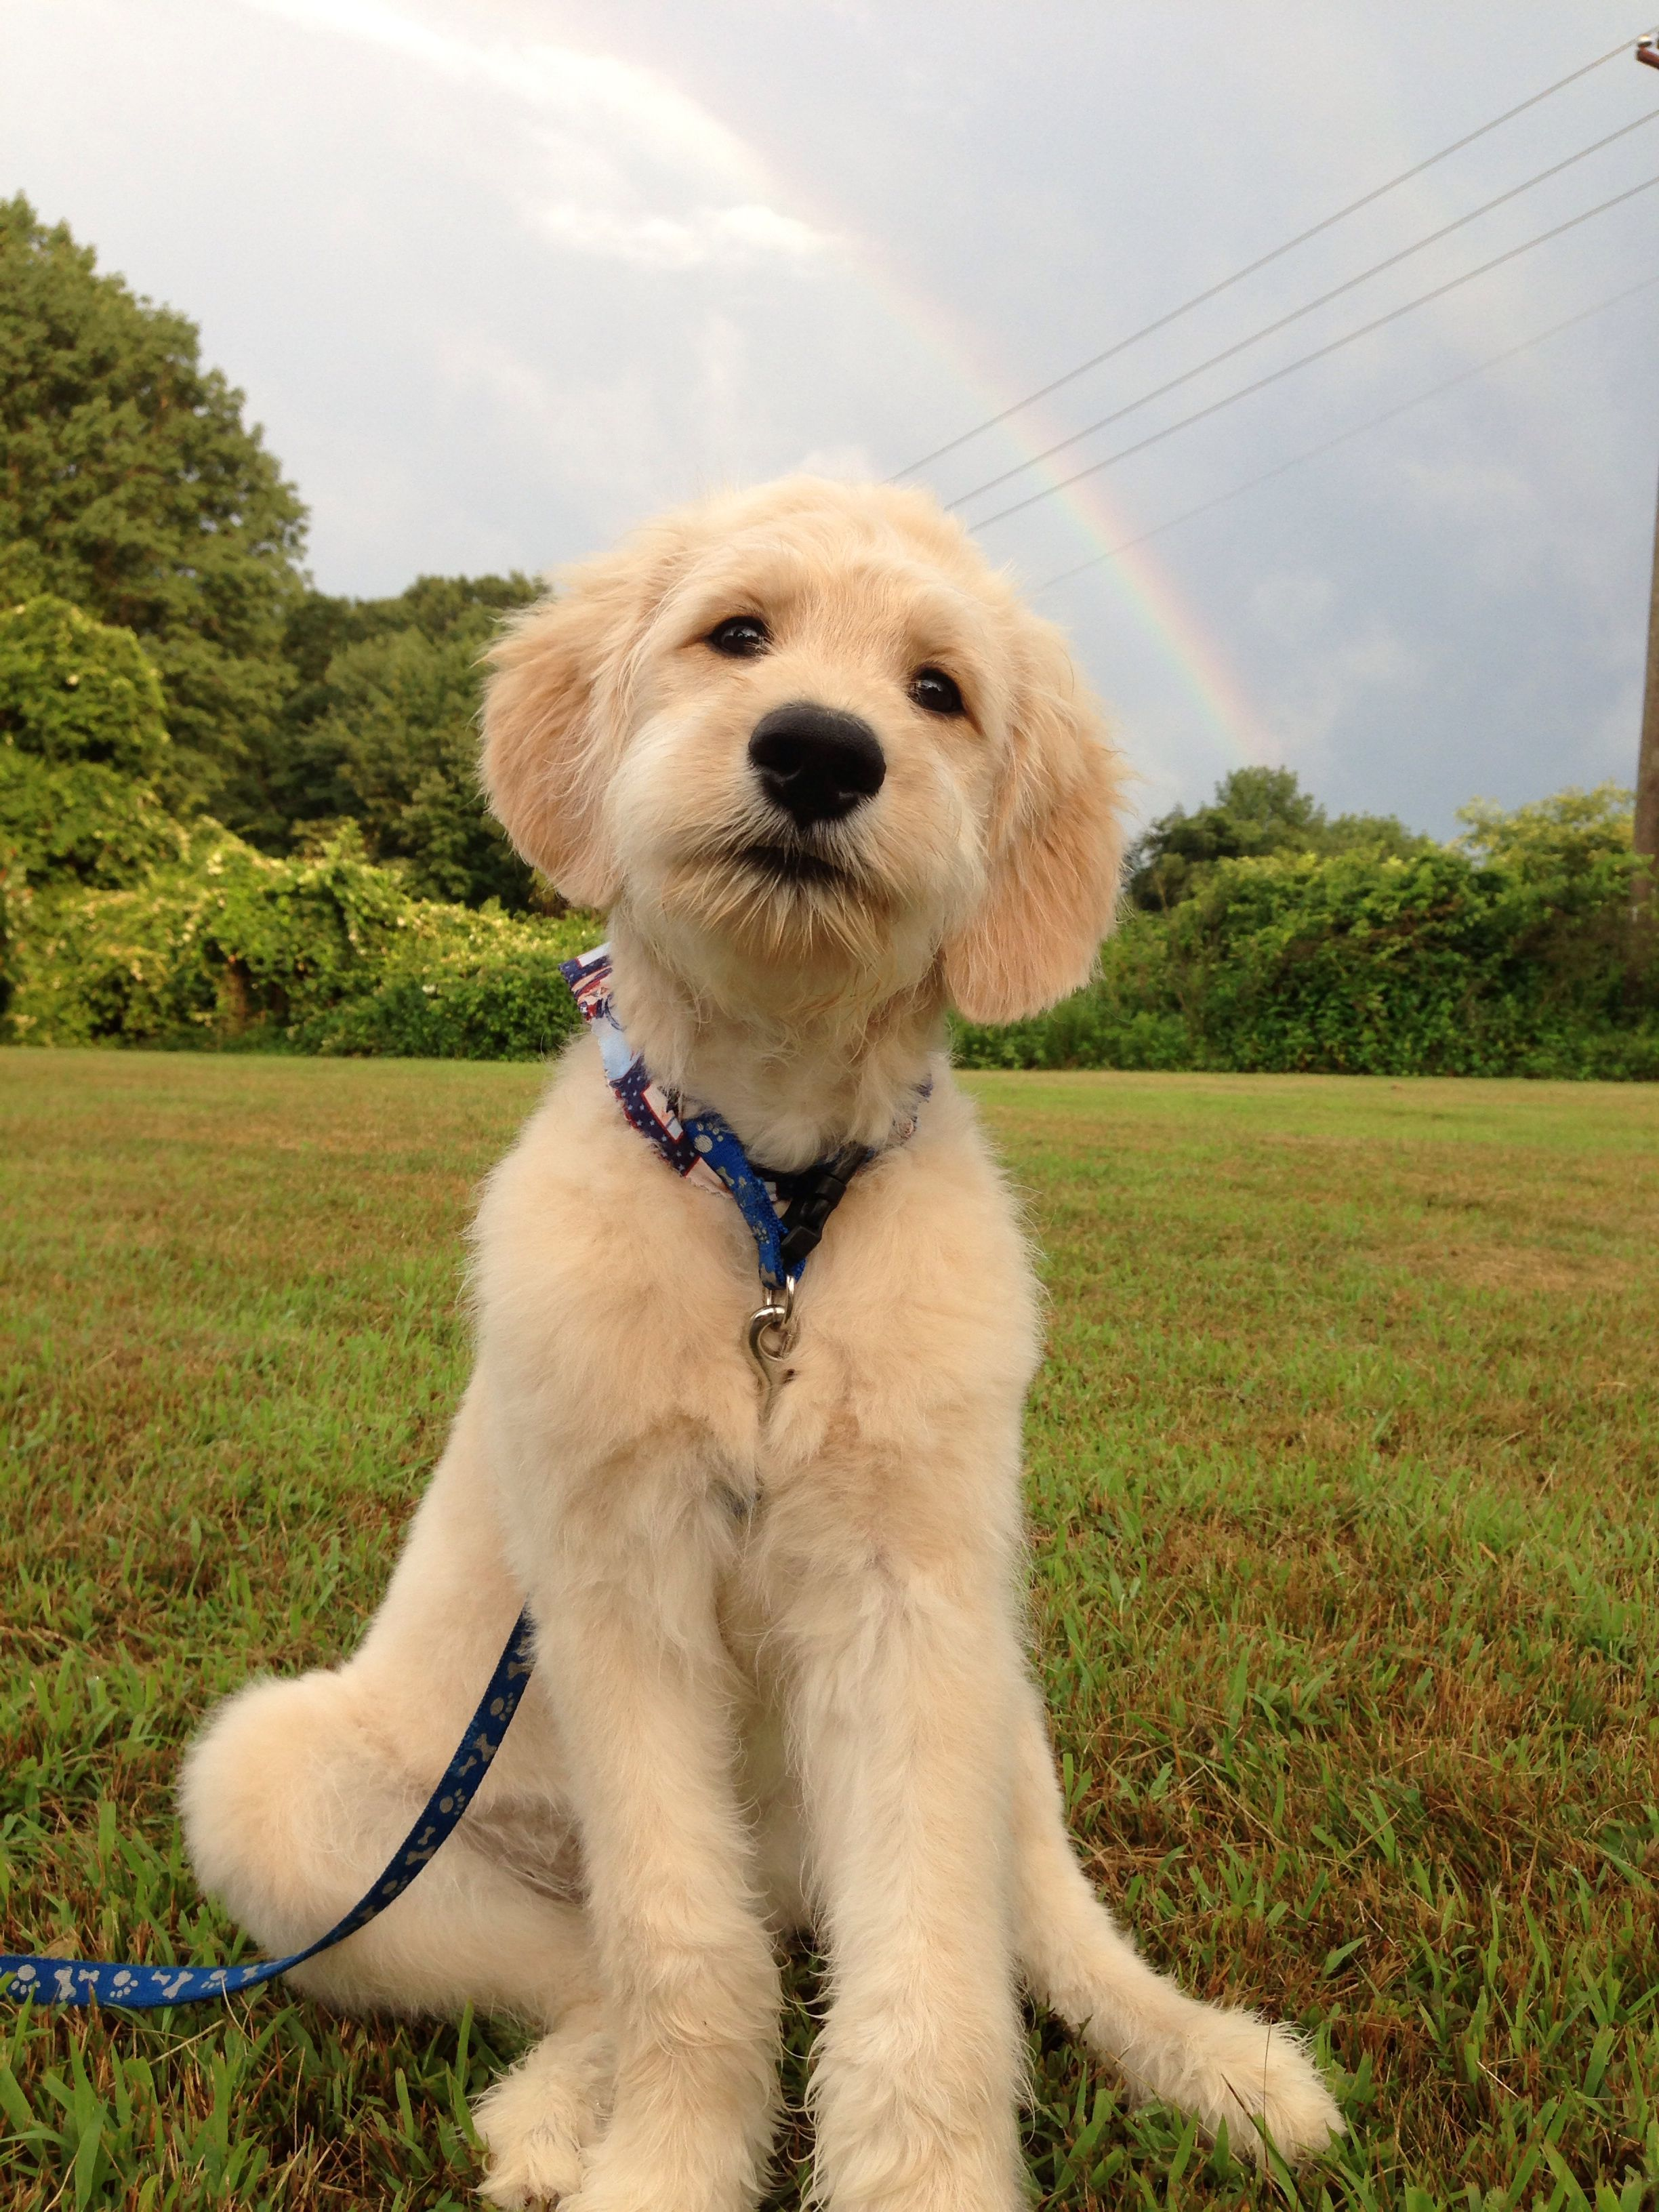 goldendoodle haircut goldendoodle haircut pictures goldendoodle grooming 5 best tips on how to groom a